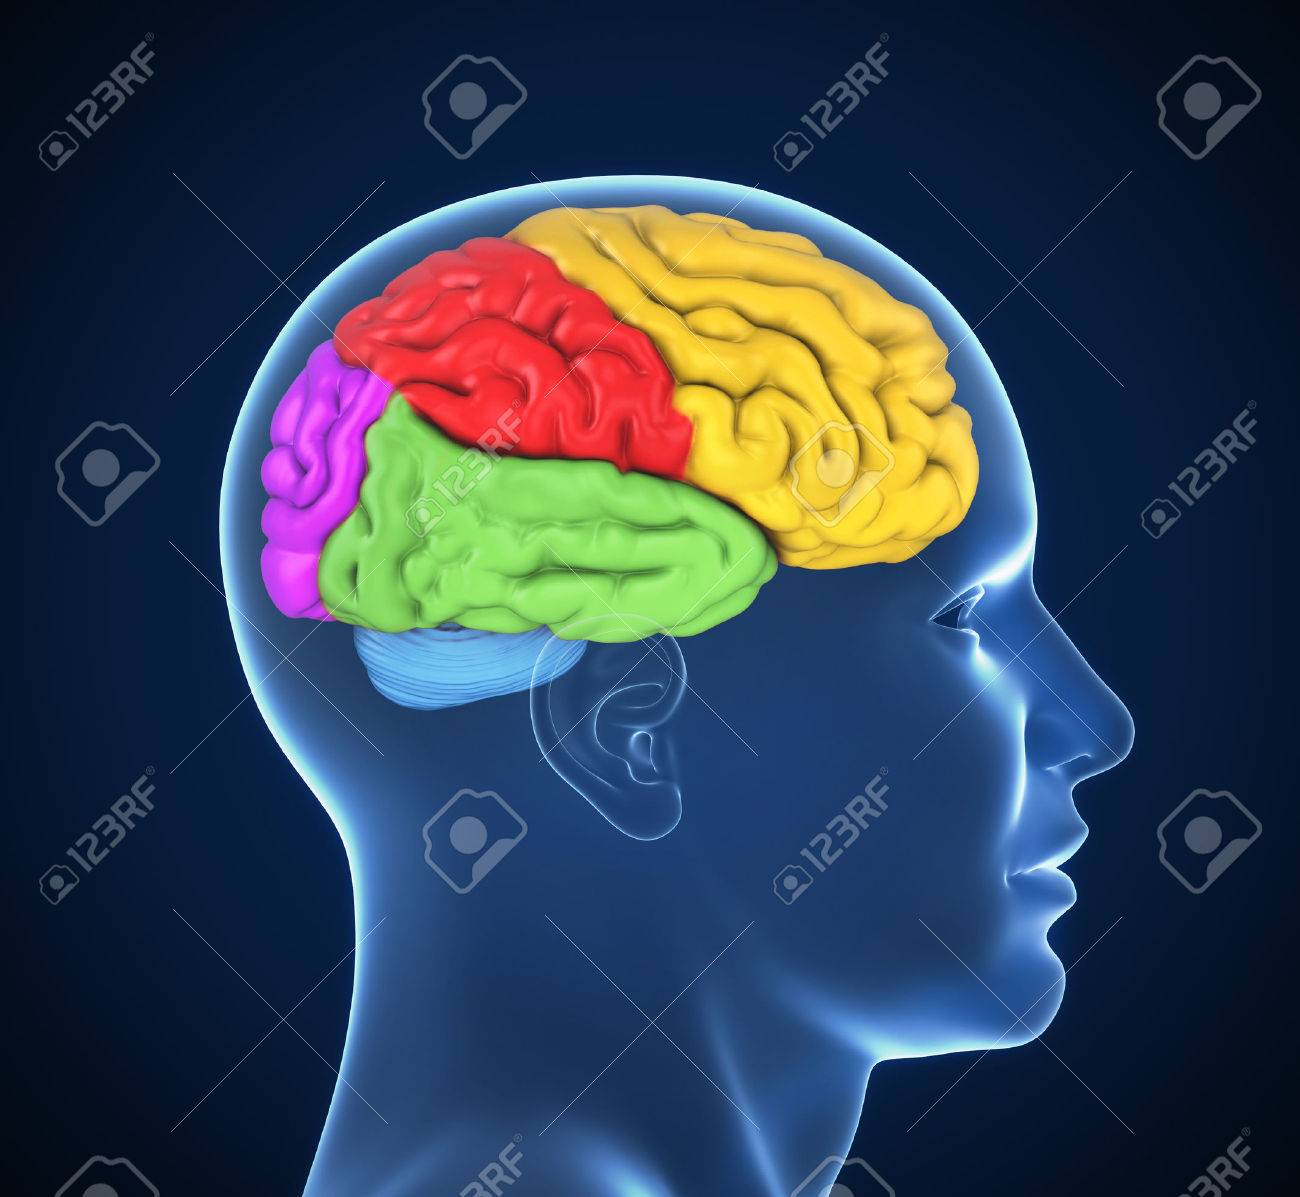 Human Brain 3d Illustration Stock Photo, Picture And Royalty Free ...